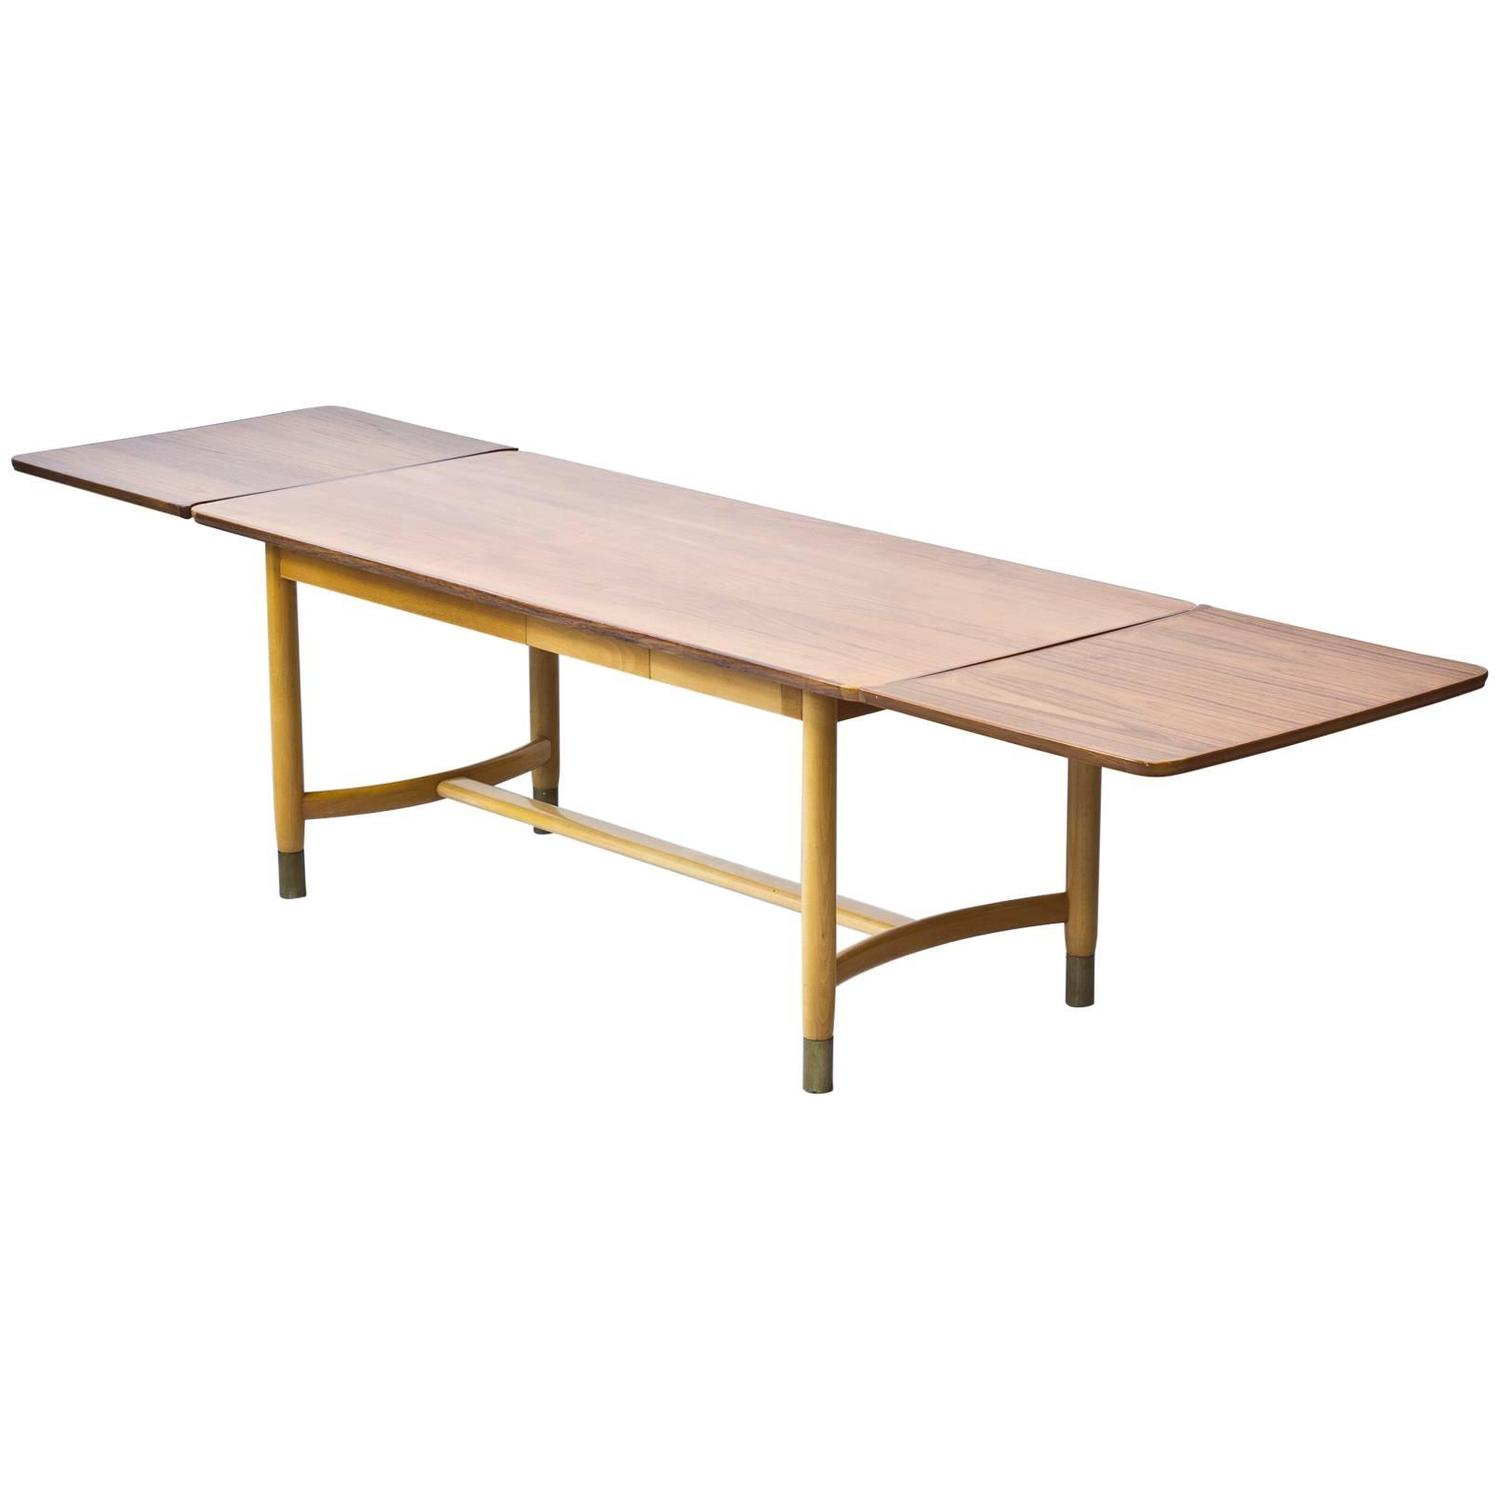 Unique 1950s dining table by ralph alton for sale at 1stdibs for Unusual dining tables for sale